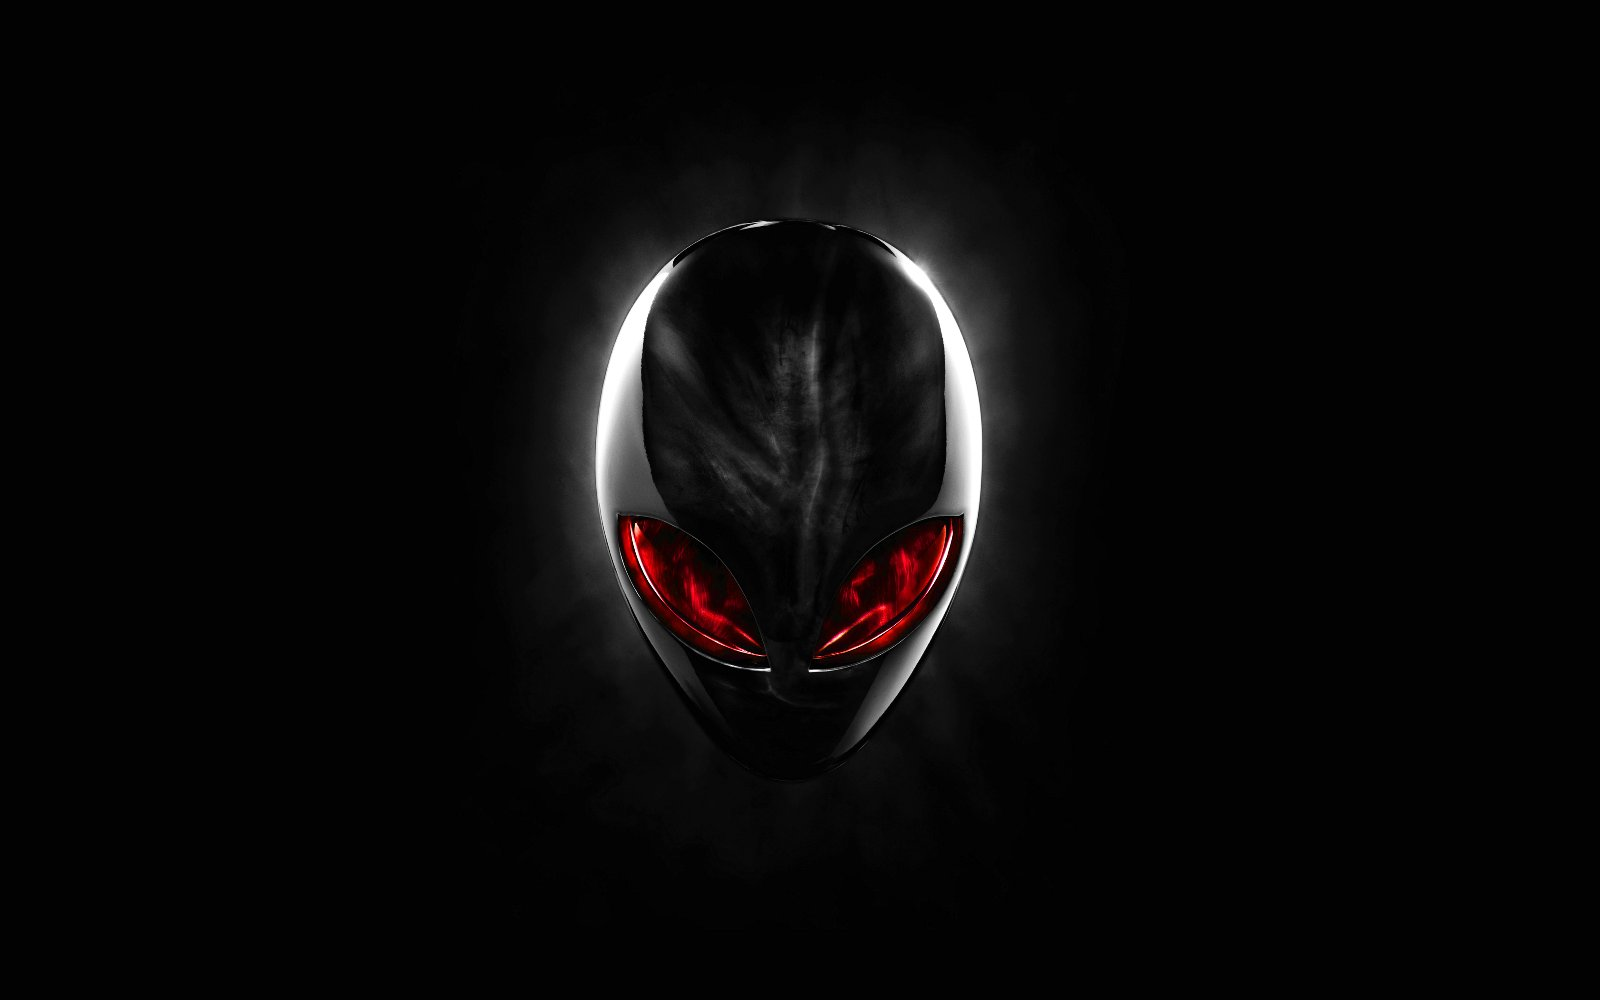 http://2.bp.blogspot.com/-lcobkrq79lw/TgnhntU-R9I/AAAAAAAAAA4/JRCiAEm2bEA/s1600/Chrome_Alienware_Red_Eyes_Widescreens_Wallpapers.png